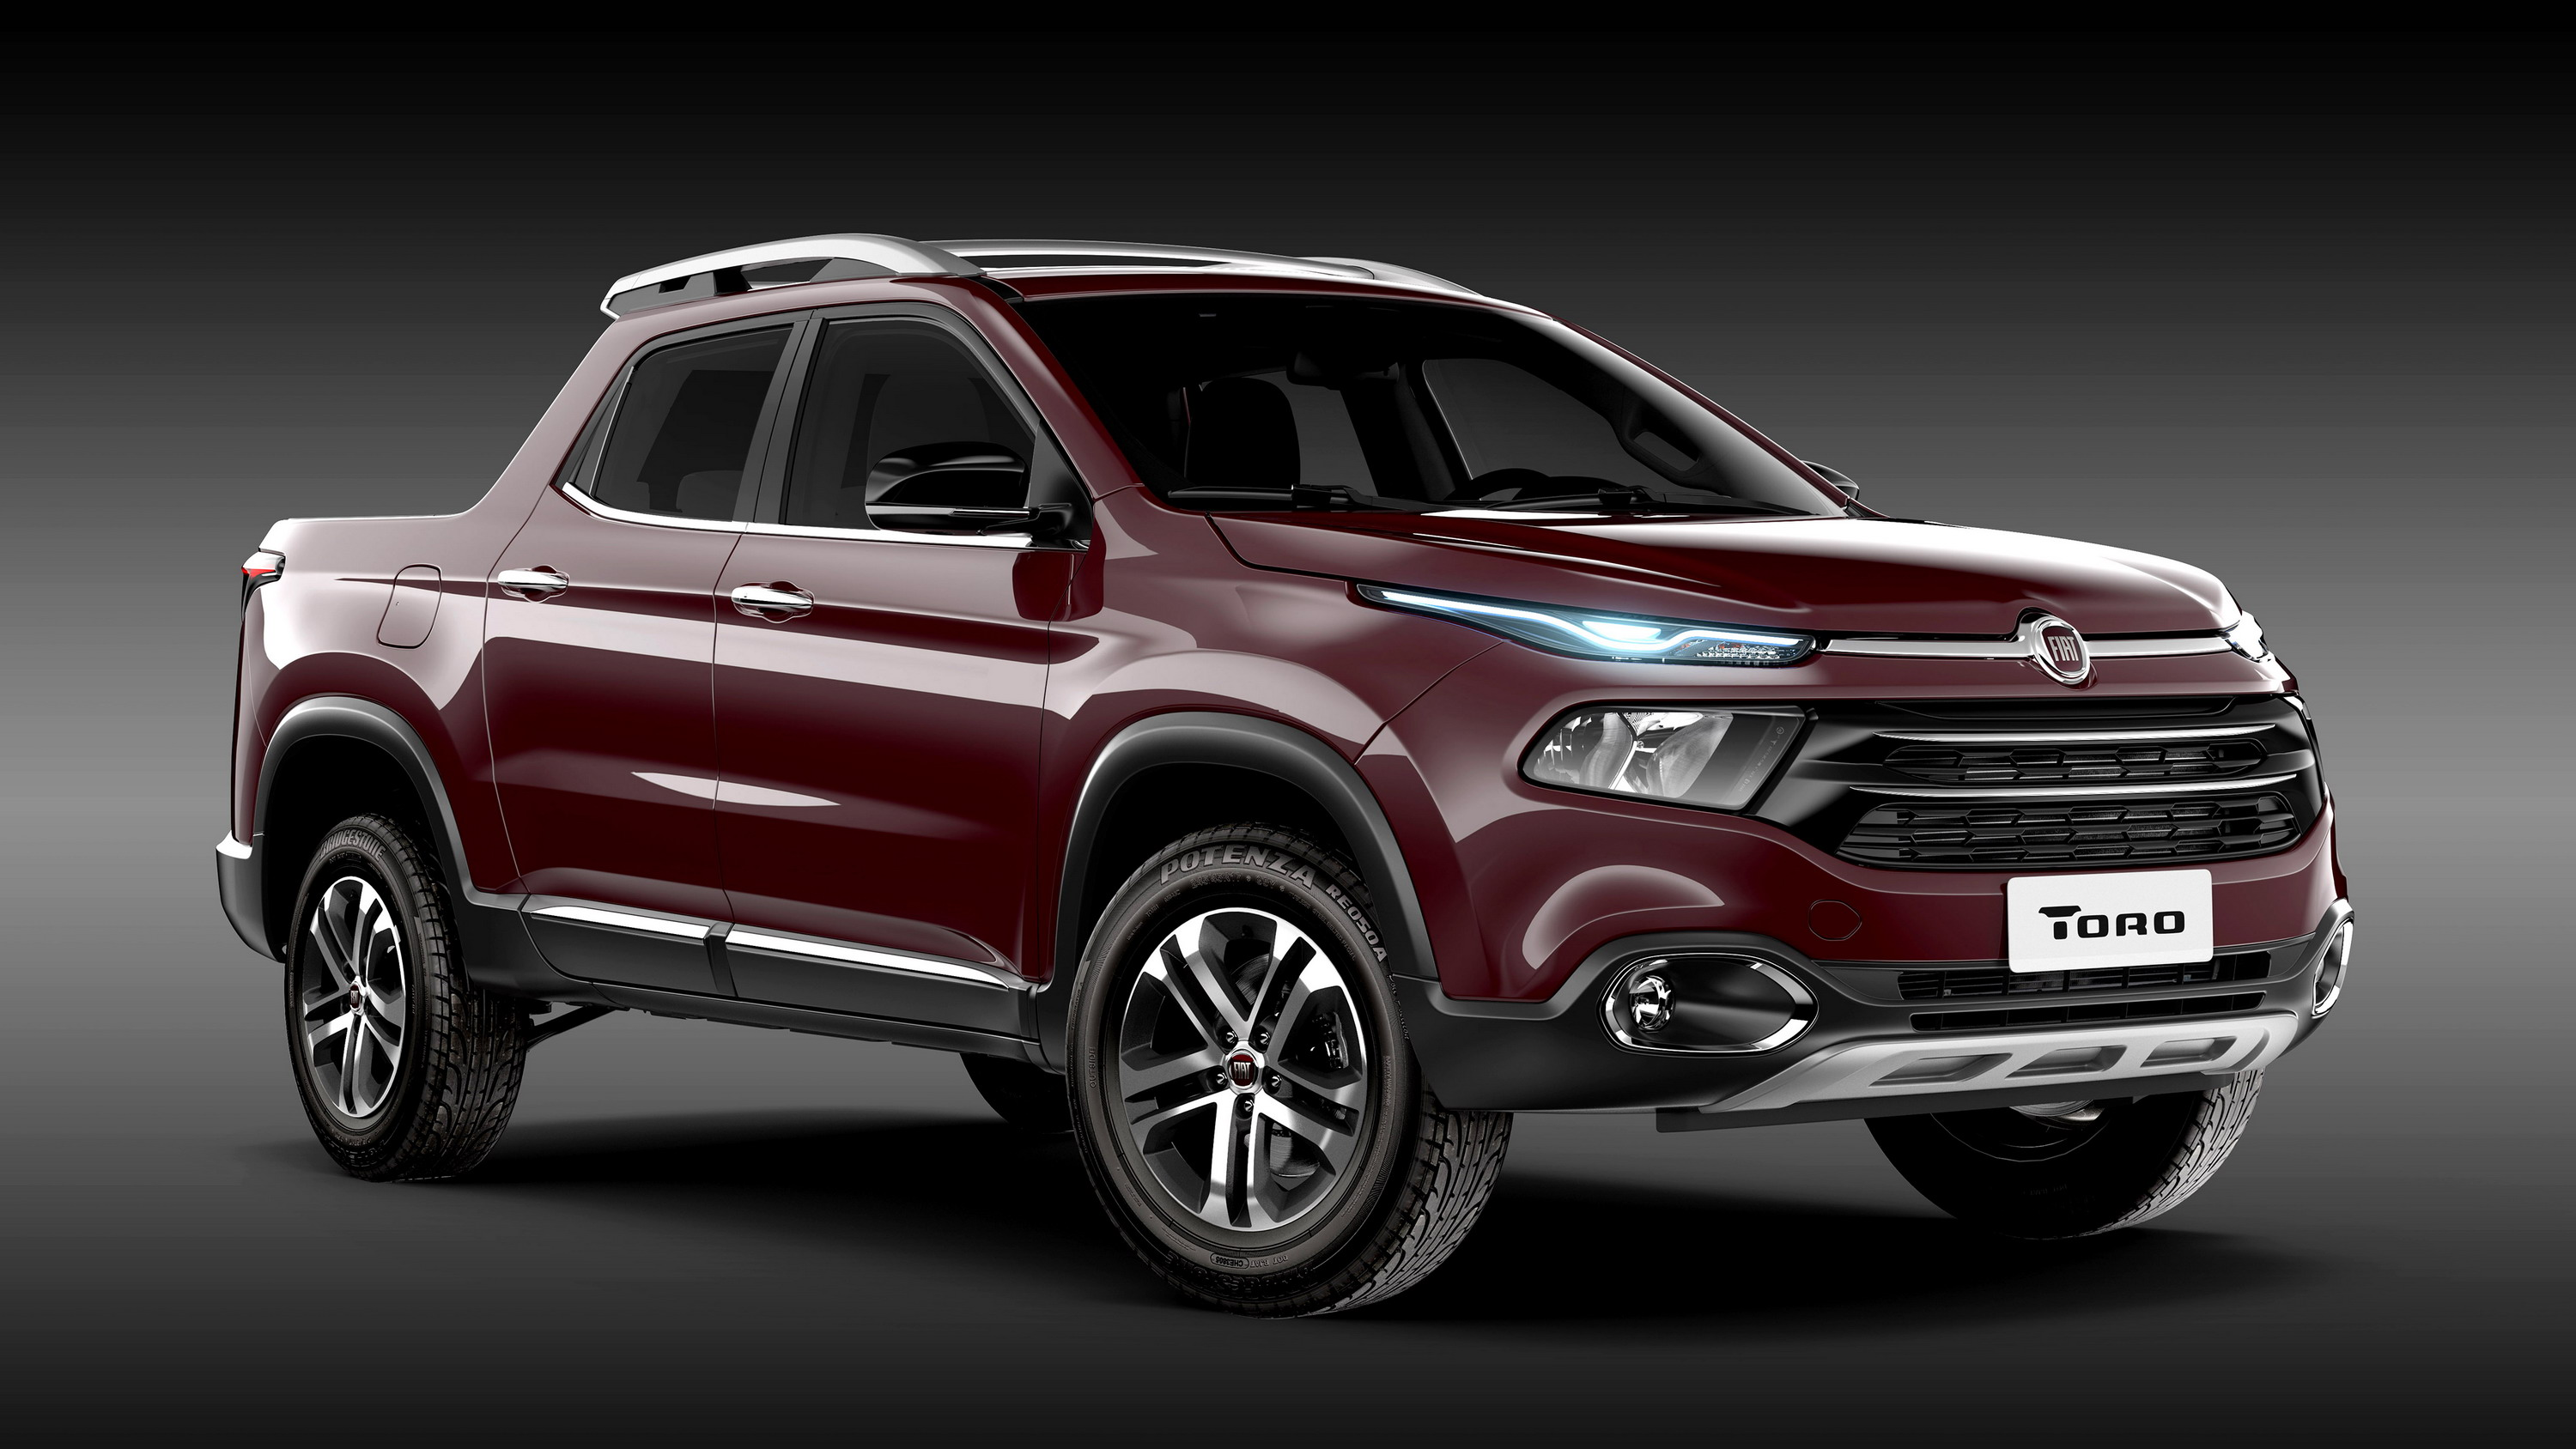 2020 Fiat Toro Release Date, Specs, Price, And Design >> Fiat Toro Latest News Reviews Specifications Prices Photos And